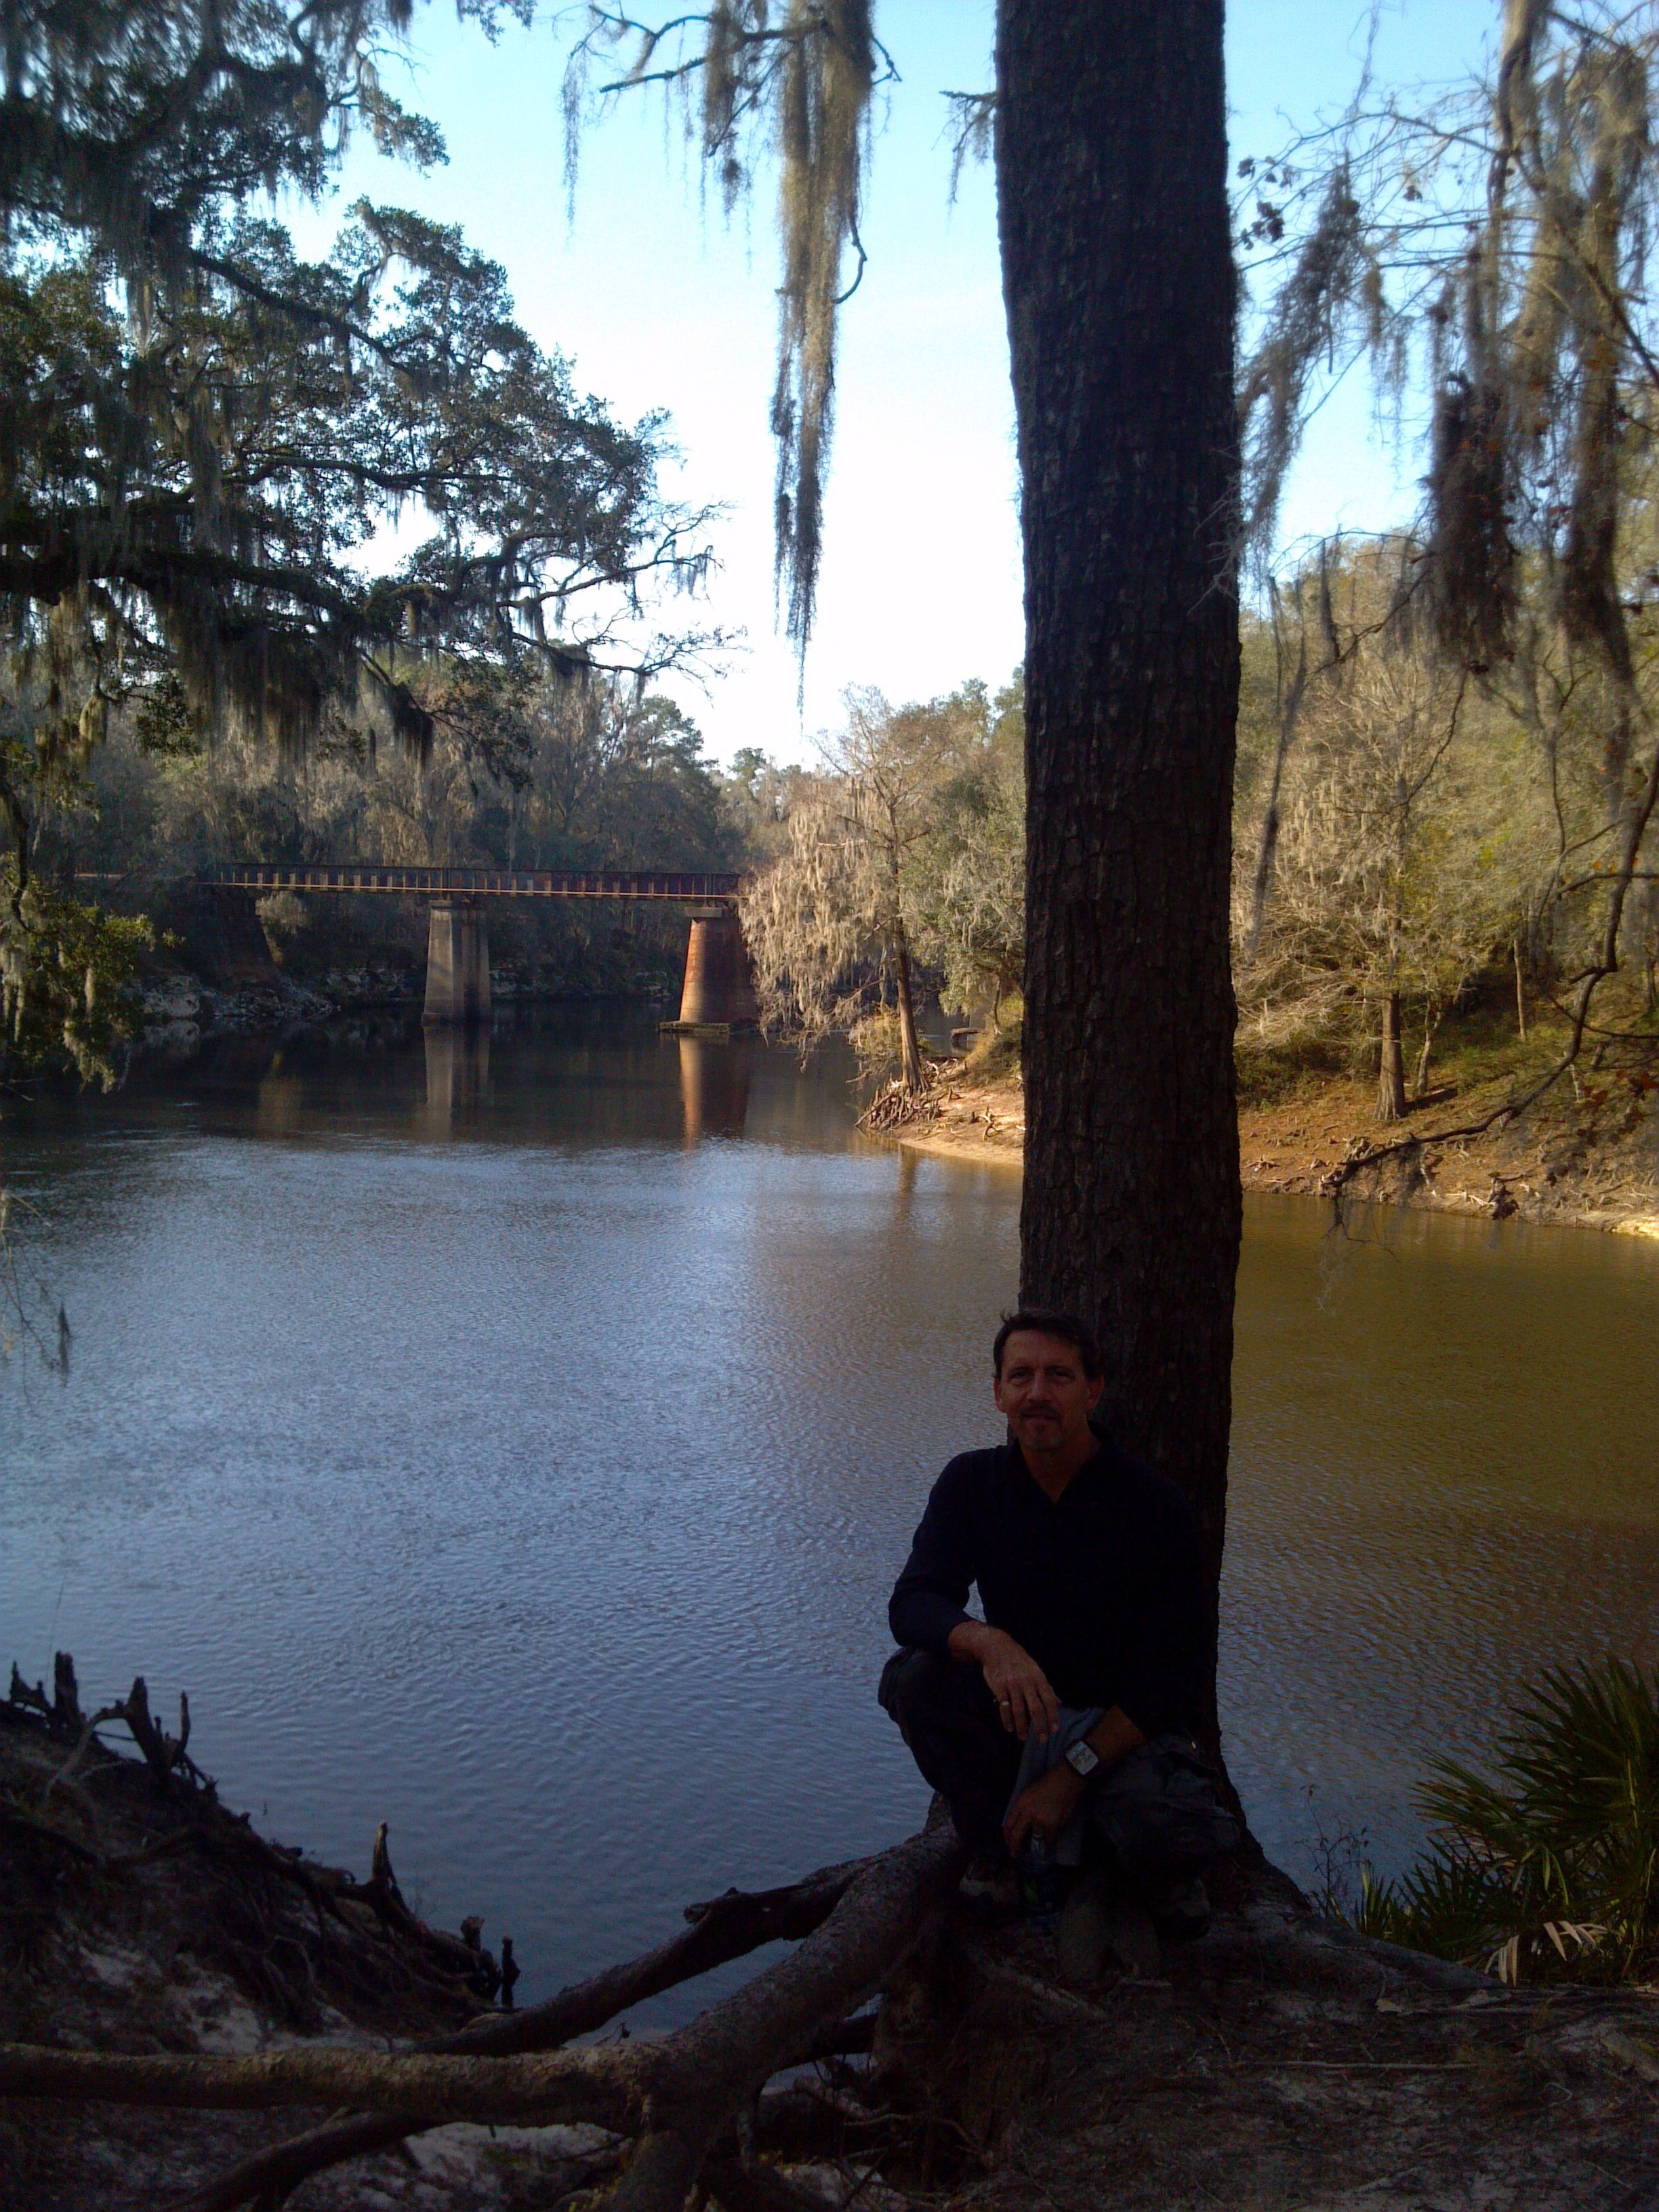 2 Night Backpacking Trip Us 129 To Suwannee River State